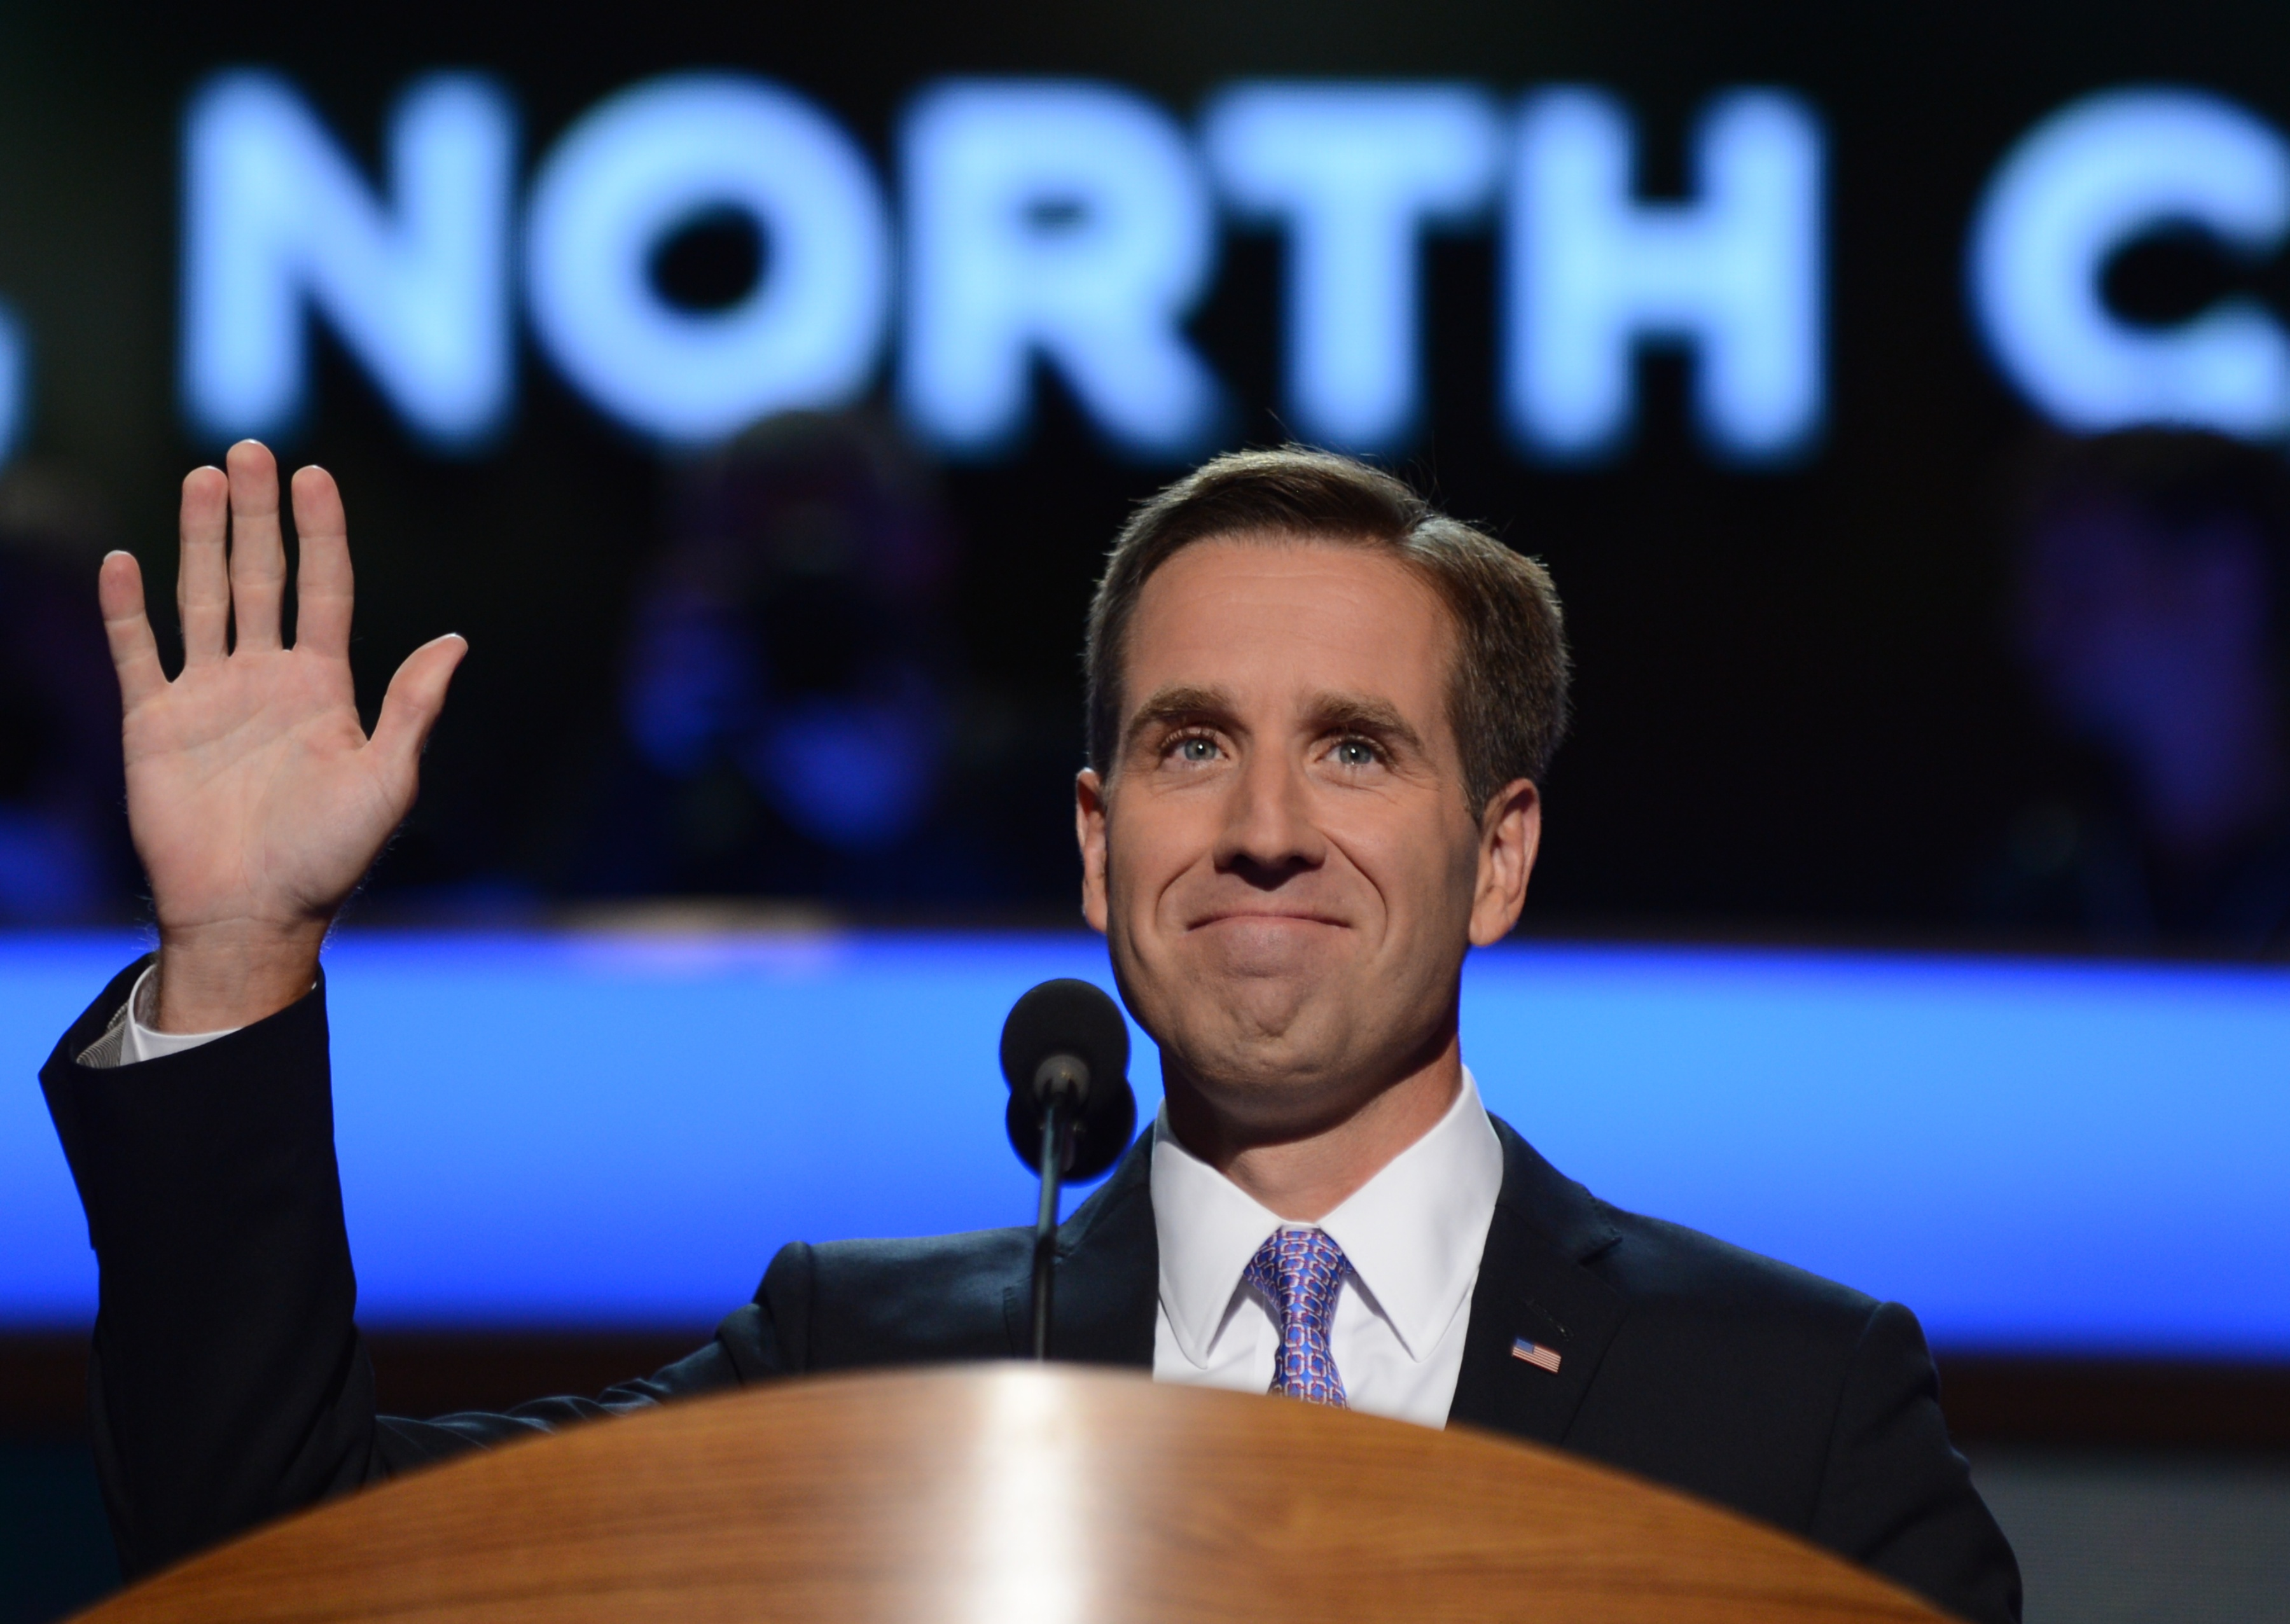 Tonight: Beau Biden offers insight into his dad's performance in the VP debate